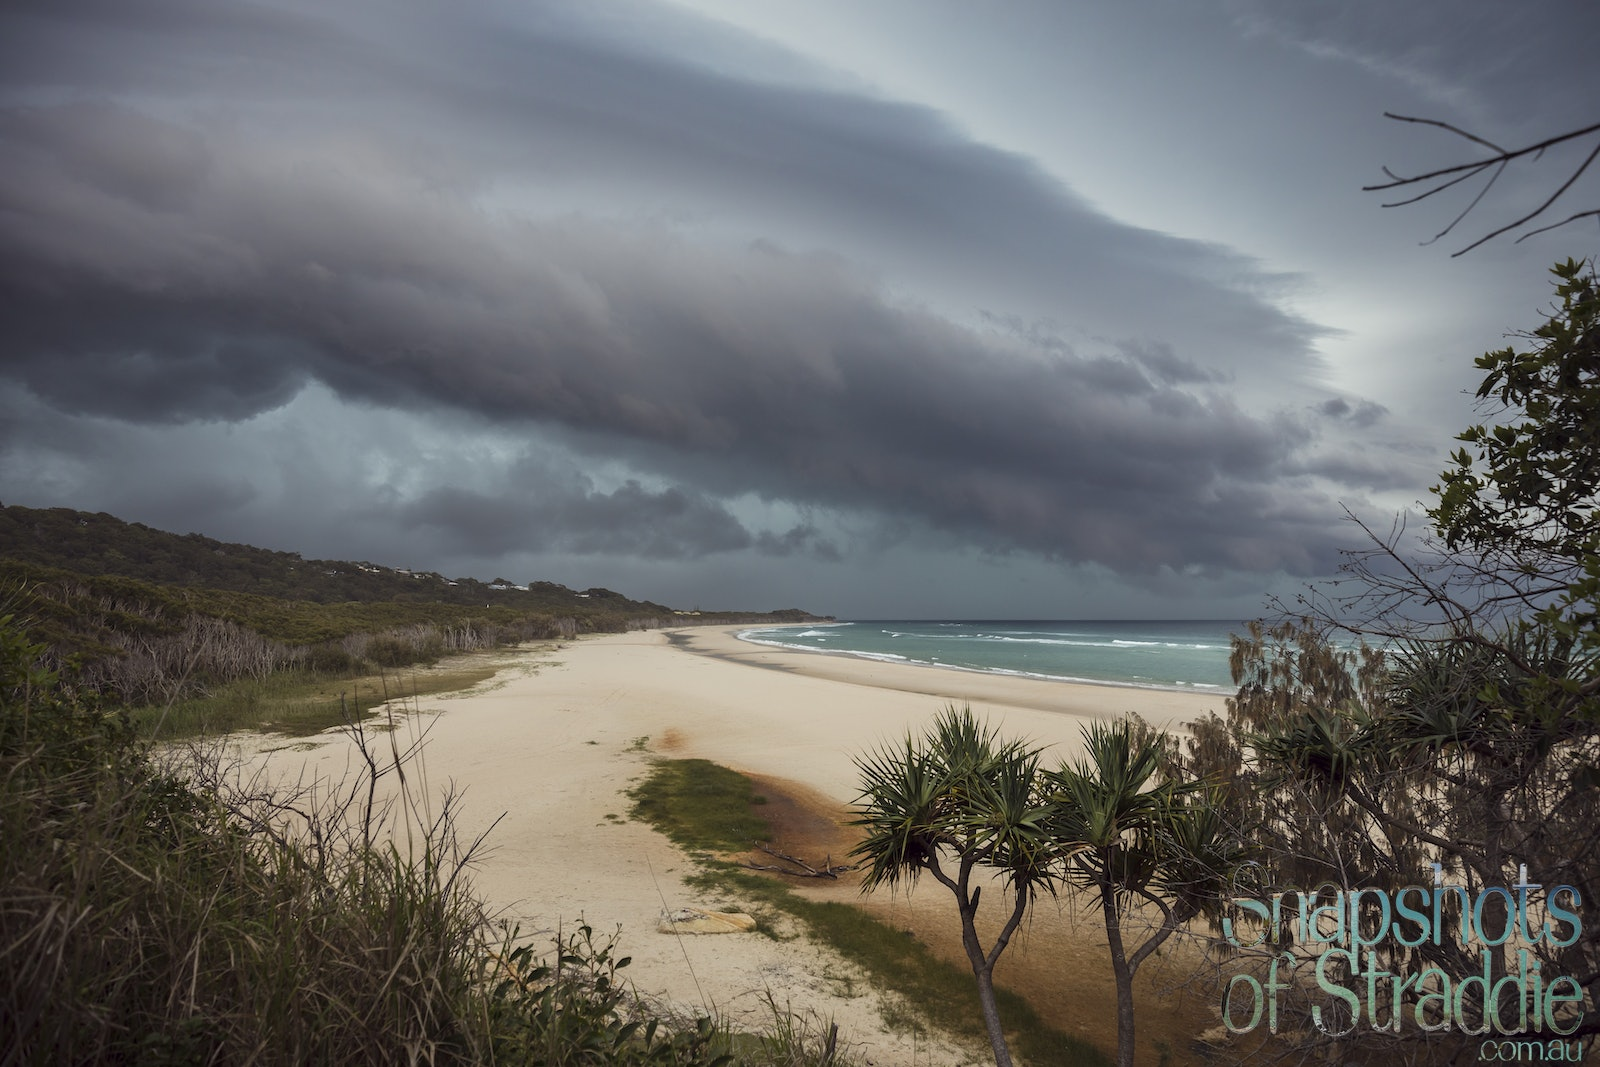 Storm approaching - Snapshots of Straddie. Wall Art Landscape and Seascape Photography by Julie Sisco. Photos from North Stradbroke Island, Queensland,...